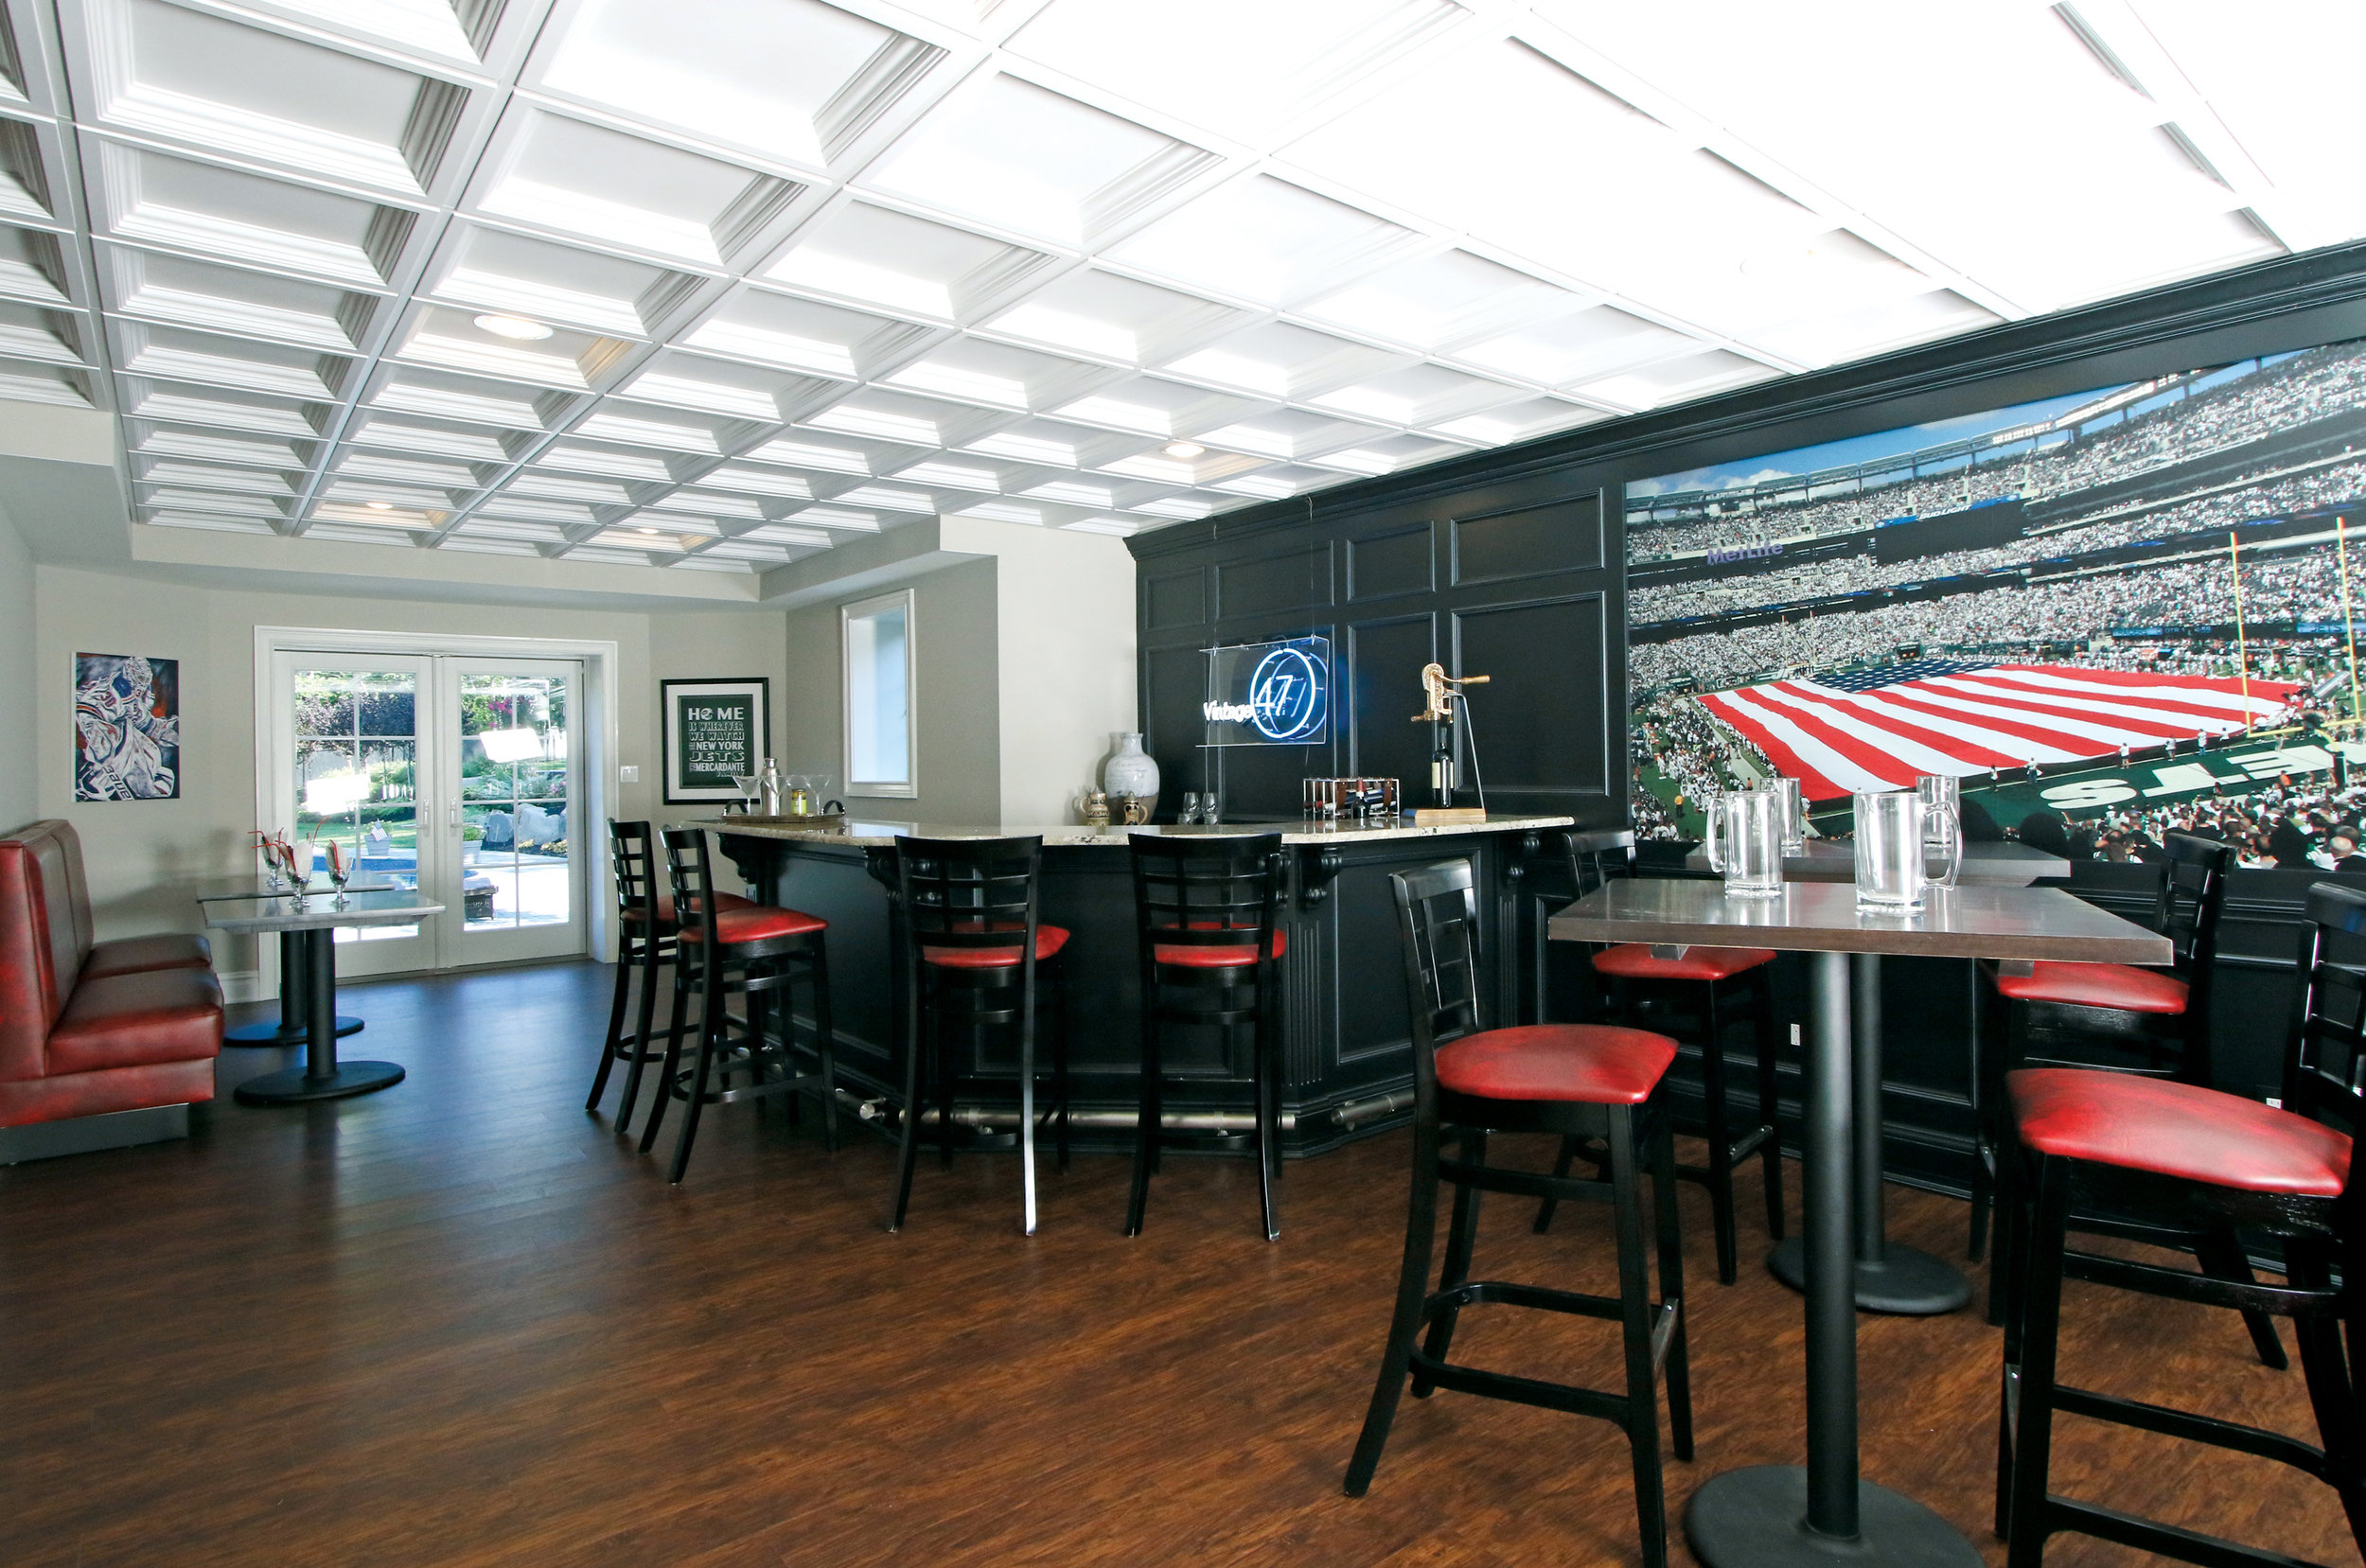 The bar area reflects the sports theme throughout